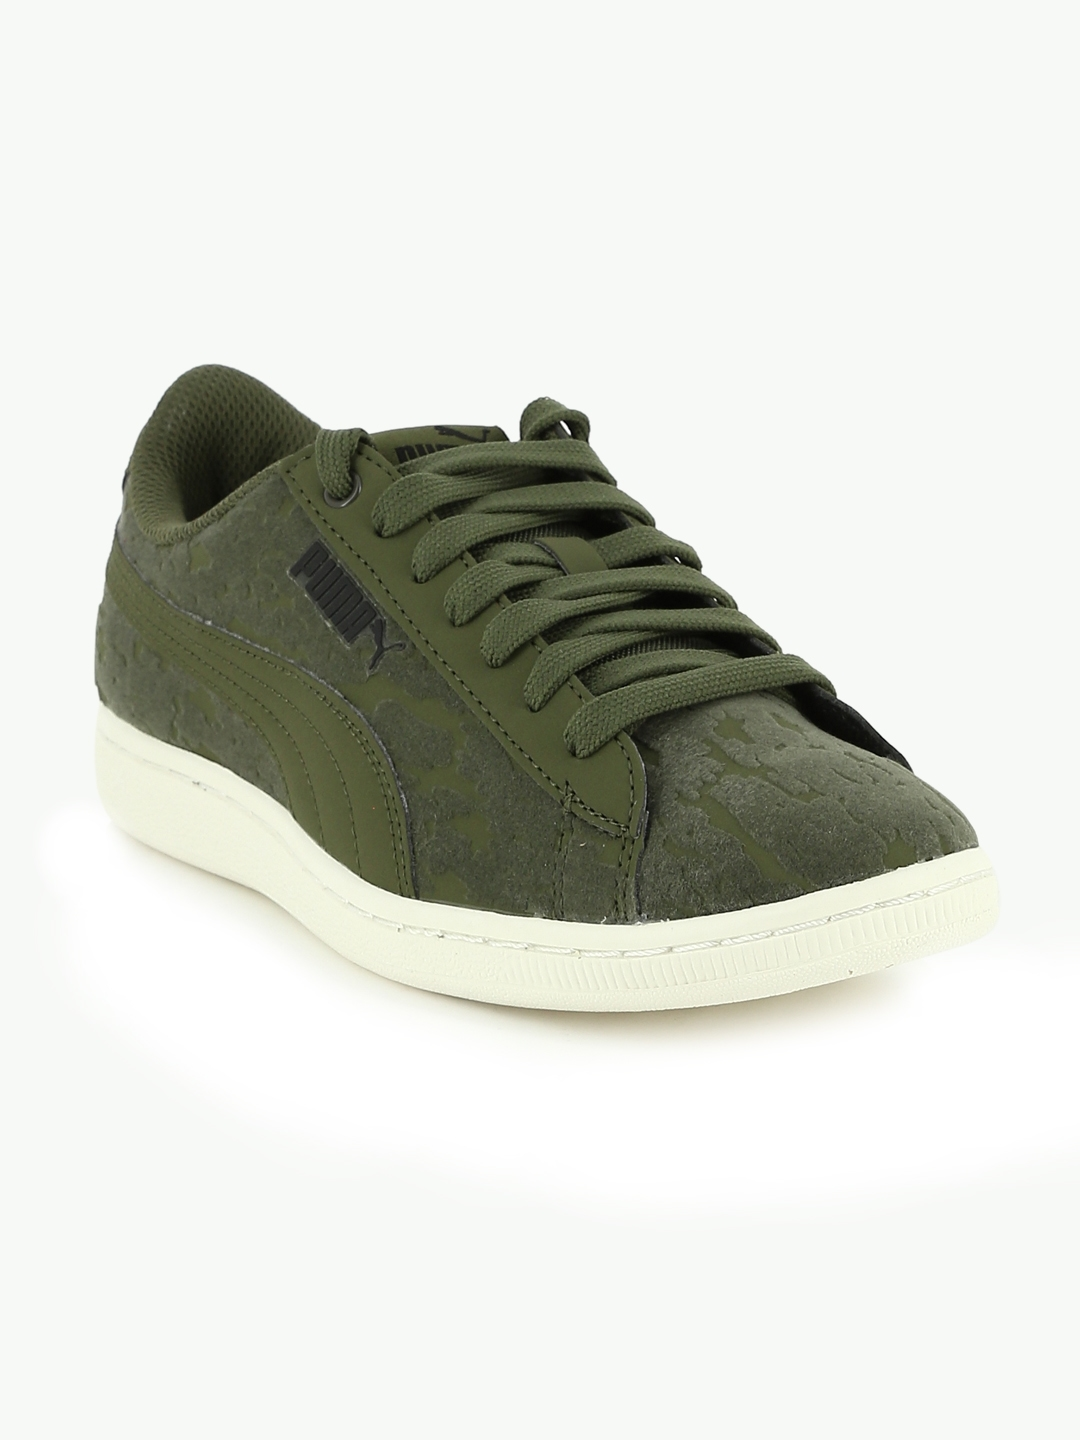 9da25a906fa0 Buy Puma Women Olive Green Vikky VR Sneakers - Casual Shoes for ...